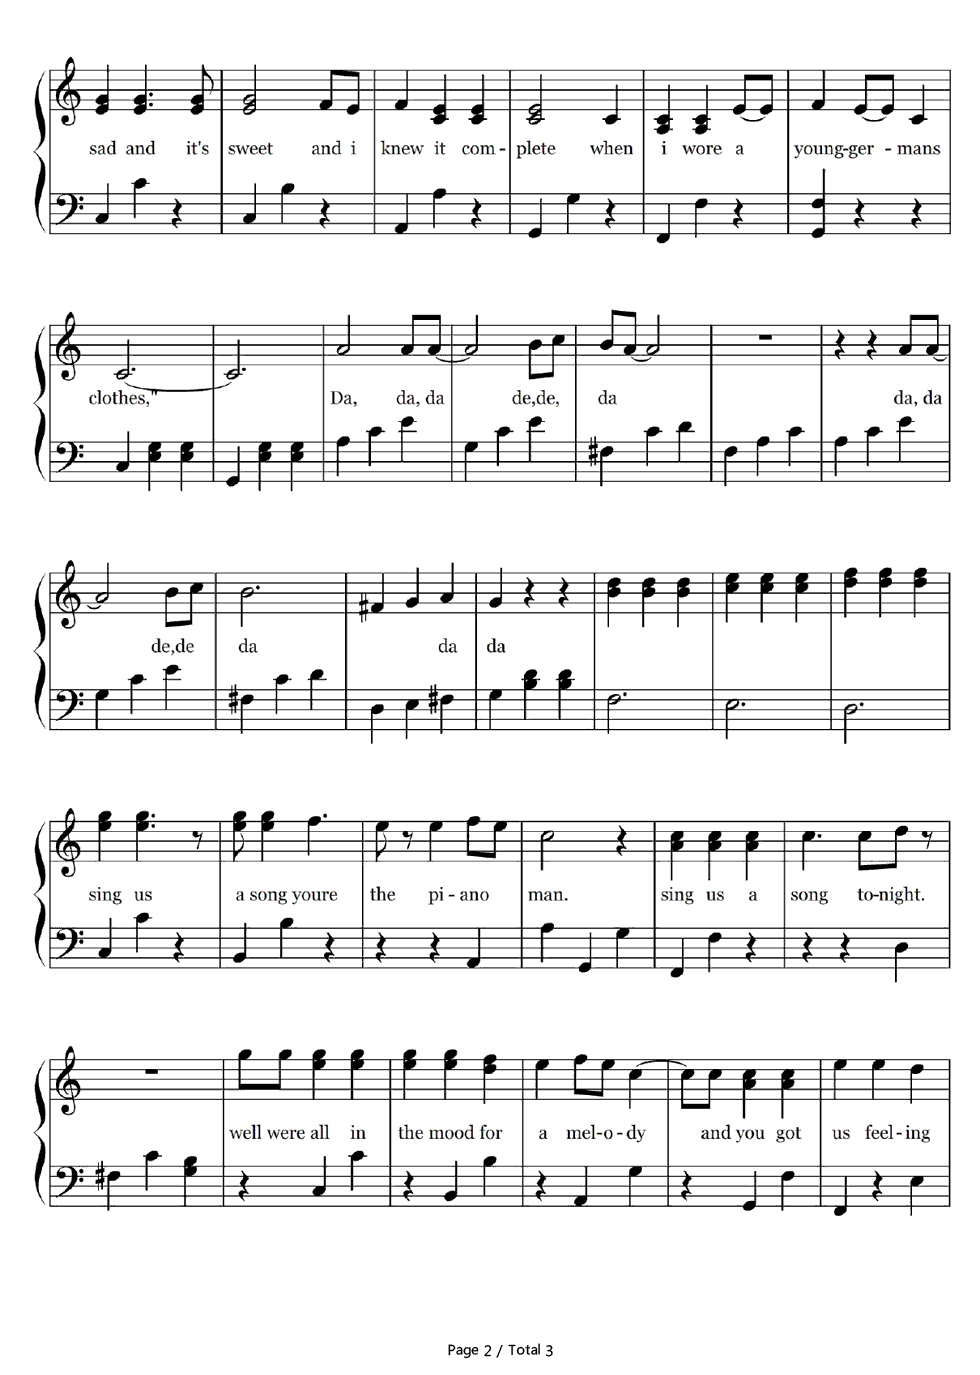 piano man simple version billy joel stave preview 2 free piano sheet music piano chords. Black Bedroom Furniture Sets. Home Design Ideas